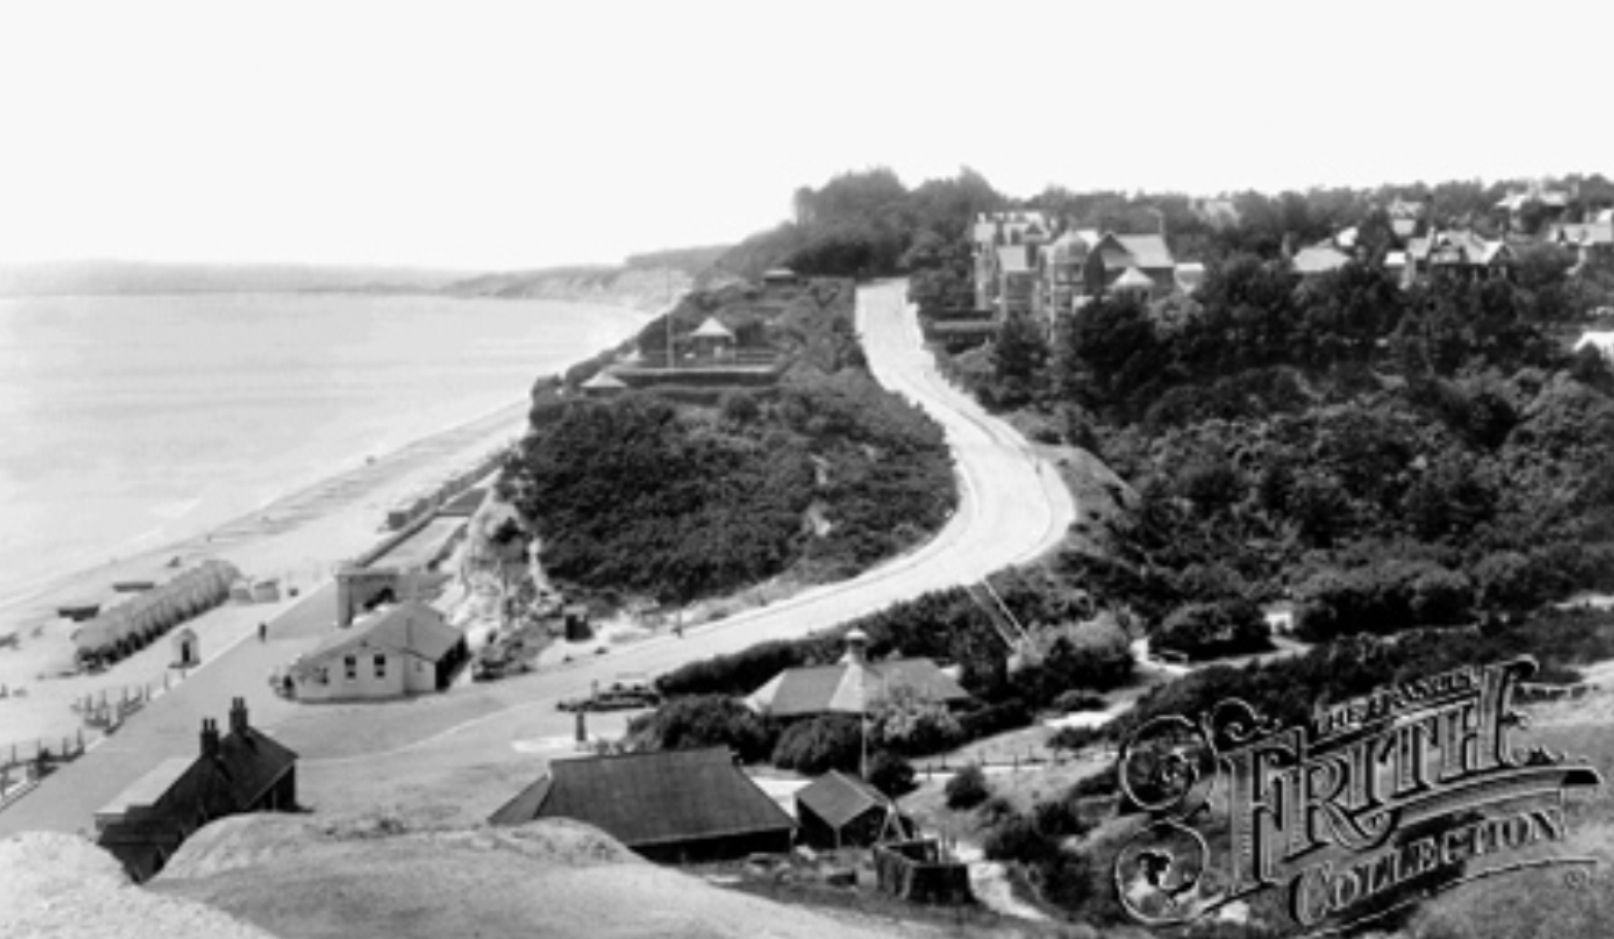 Branksome Chine and Pinecliff Road